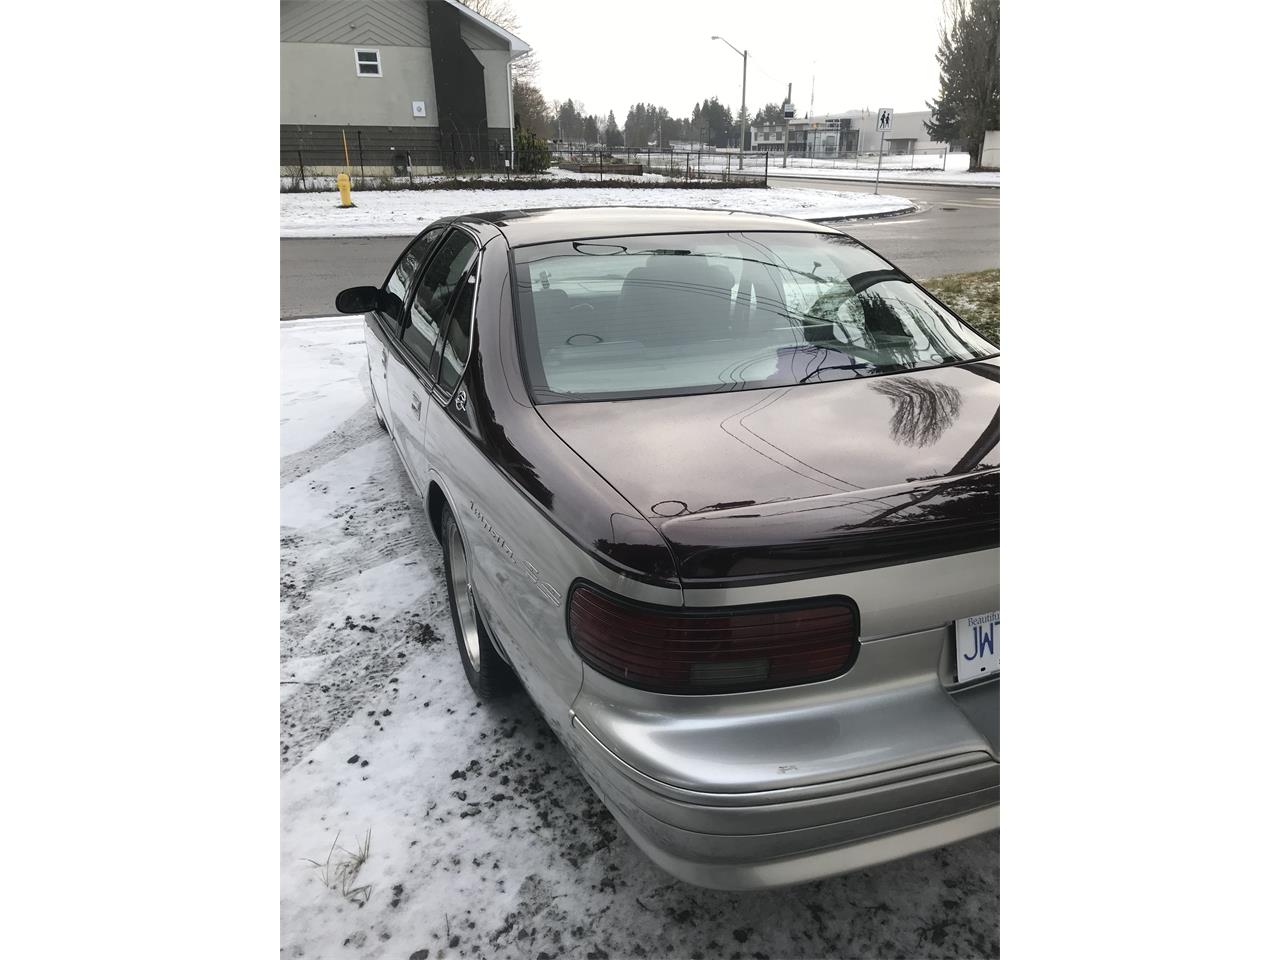 1996 Chevrolet Impala SS (CC-1302501) for sale in Terrace, British Columbia